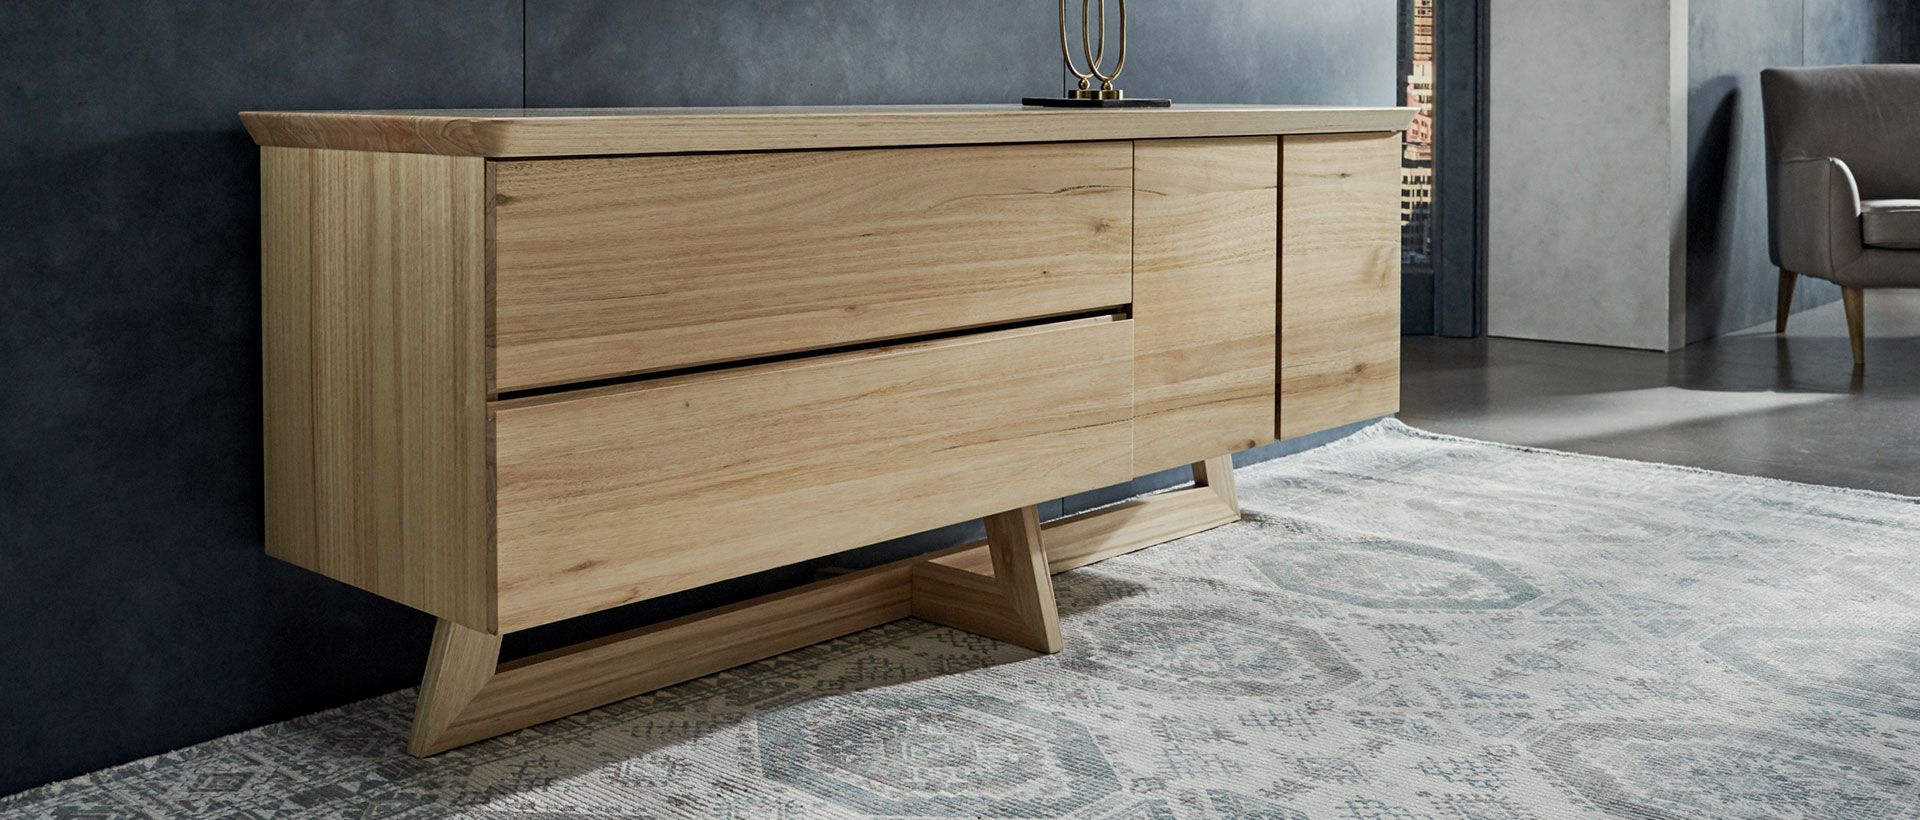 Buffets, Cabinets & Sideboards | Nick Scali Intended For Industrial Style 3 Drawer Buffets (View 9 of 30)